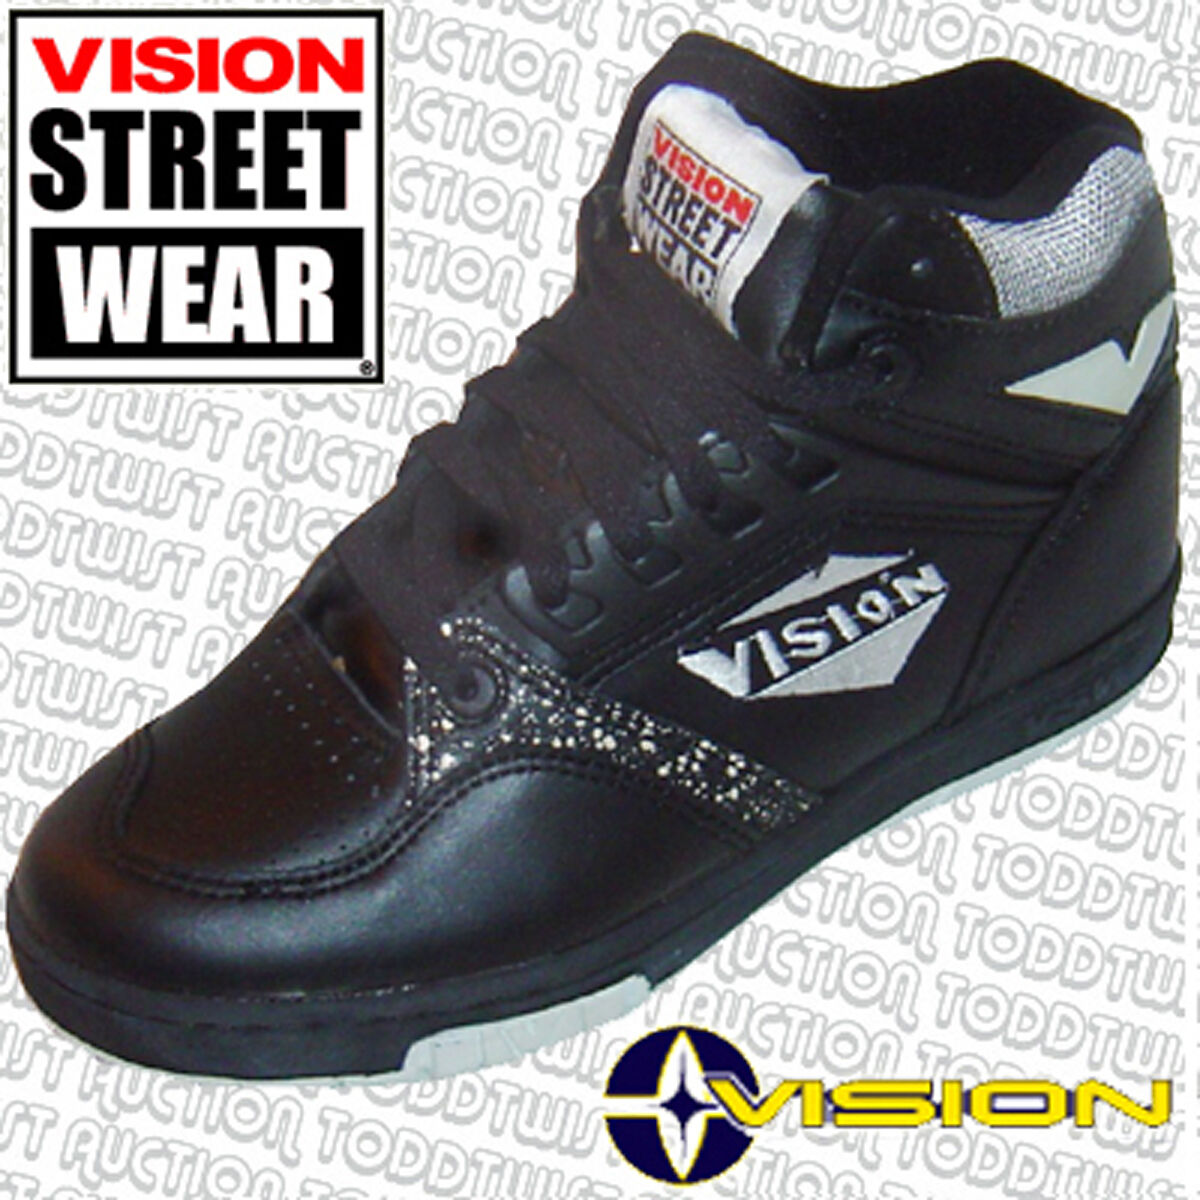 VISION STREET WEAR ms17000 Skateboard Schuhe - UK Original 7/ USA 8 - Original UK '80s Jahre 4e48e8